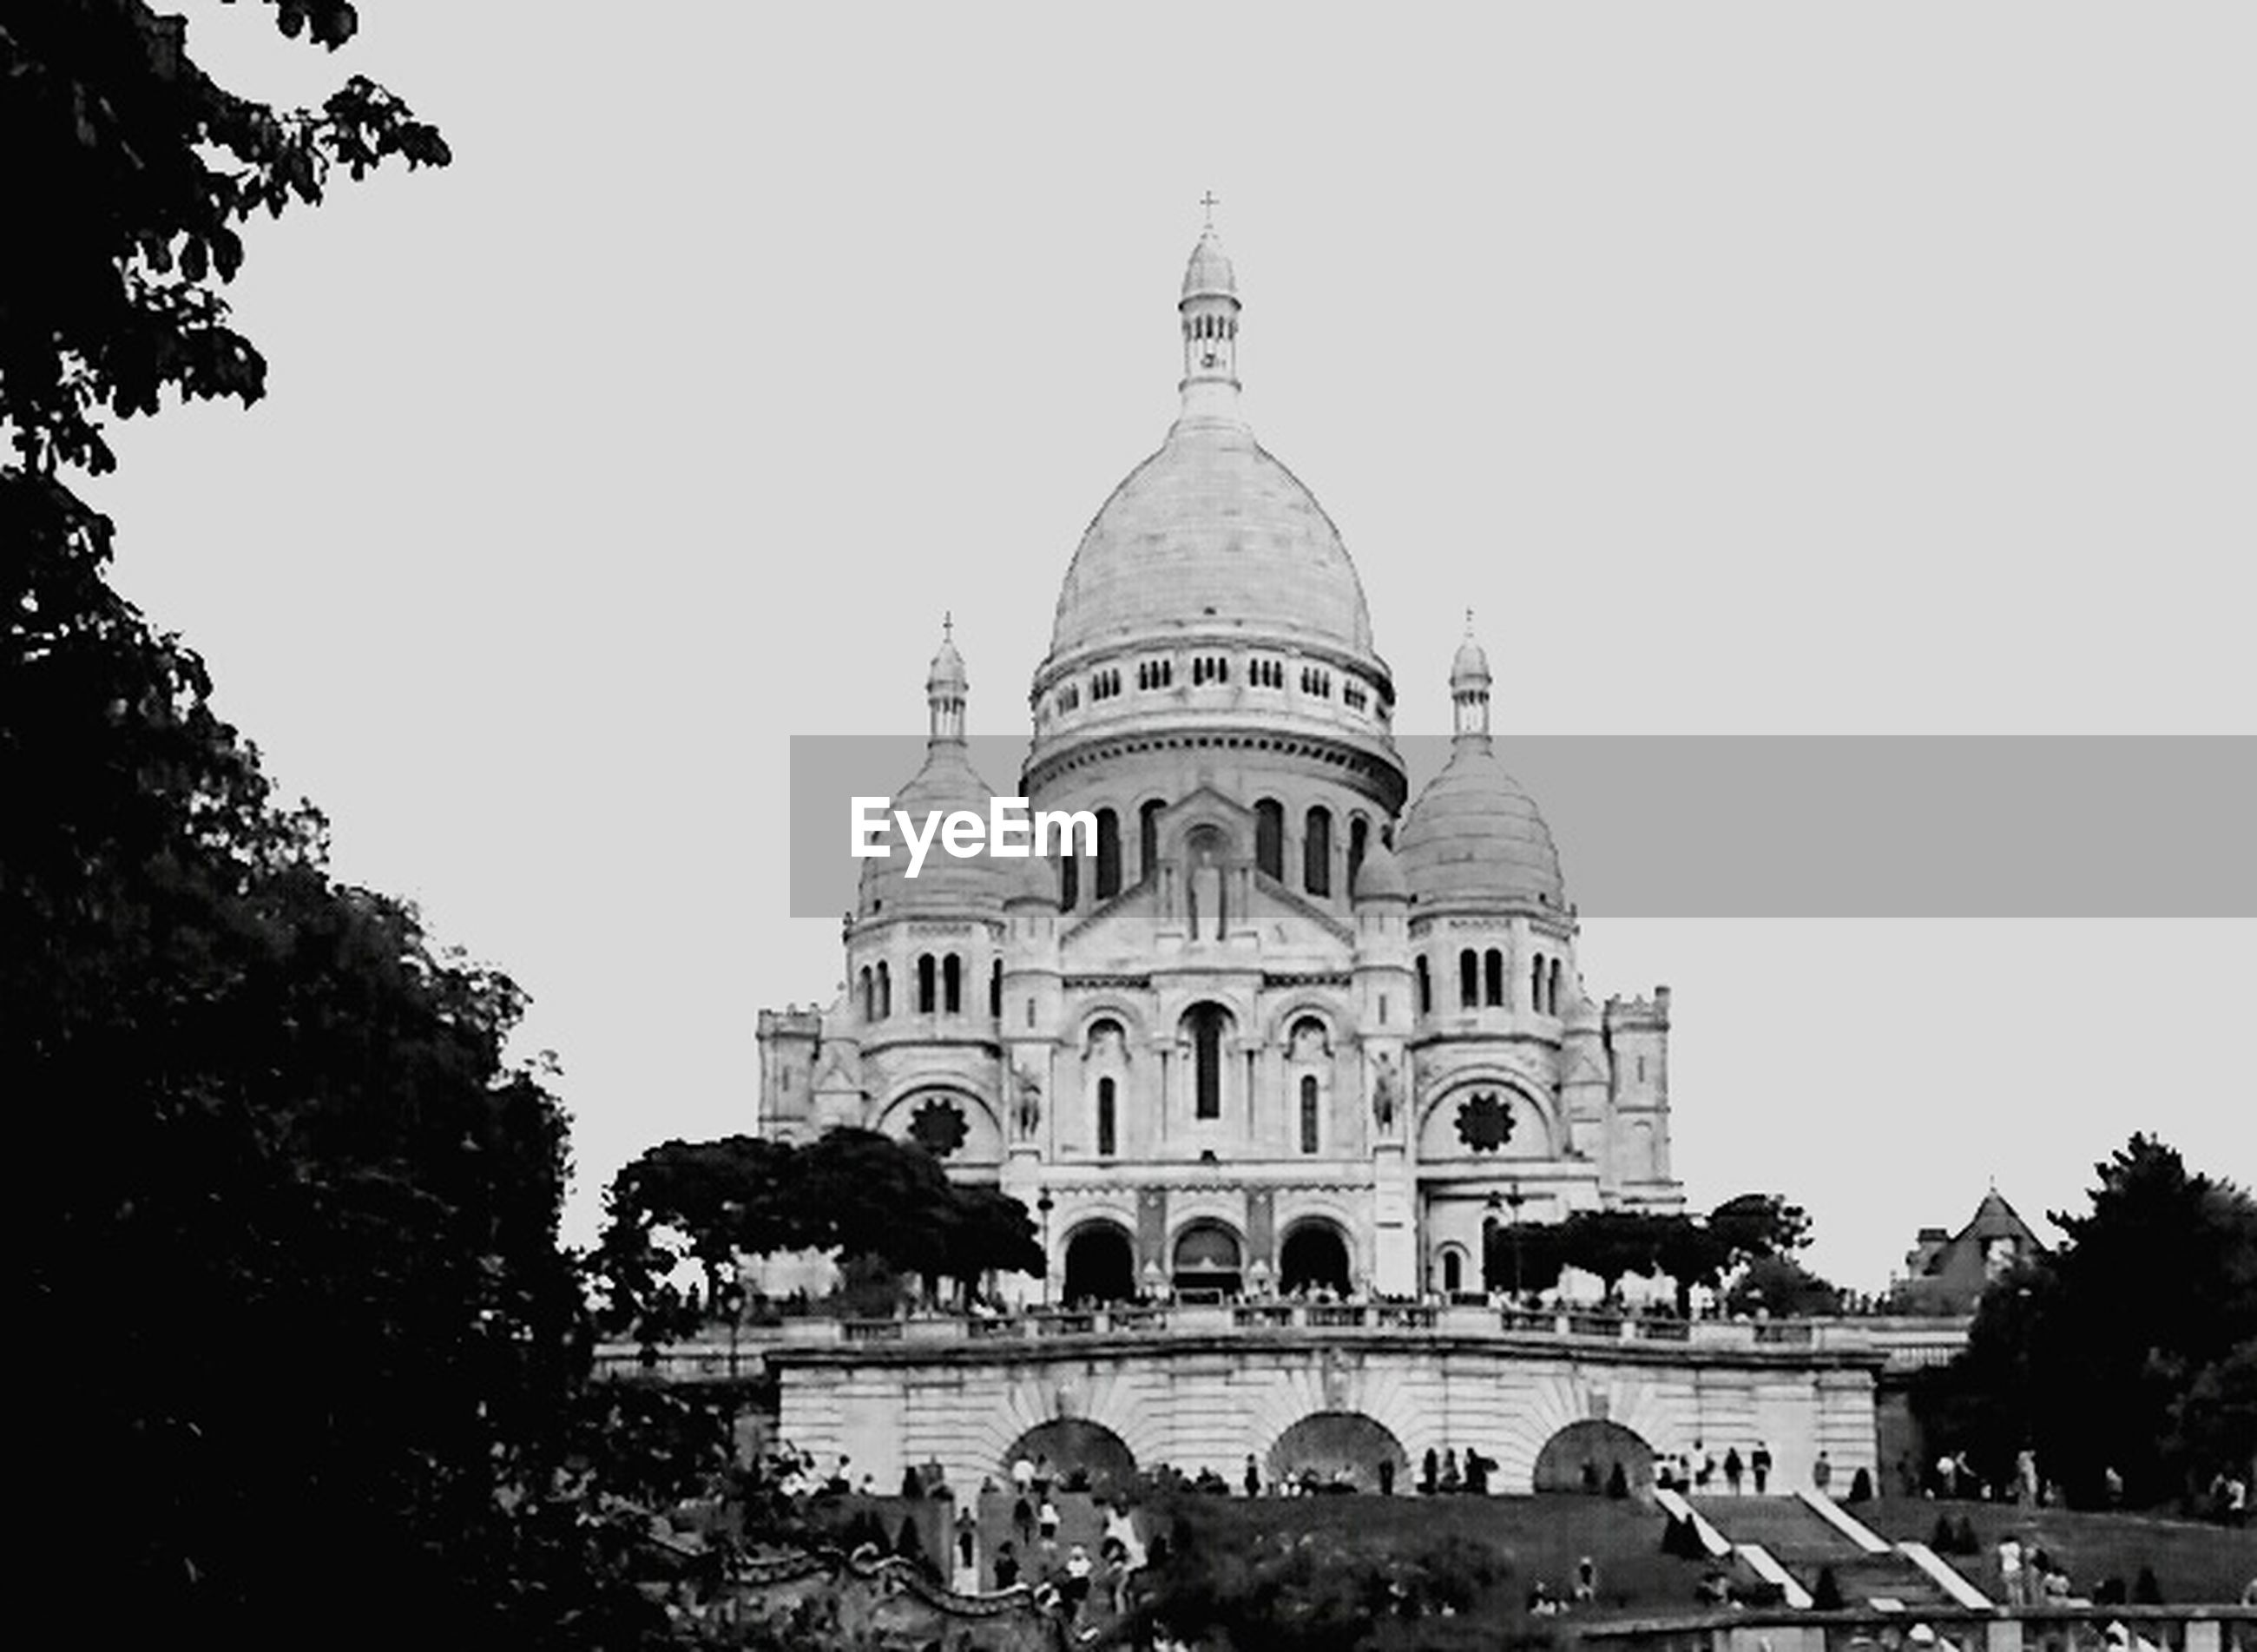 architecture, building exterior, dome, tree, city, travel, travel destinations, sky, built structure, low angle view, outdoors, place of worship, no people, day, cultures